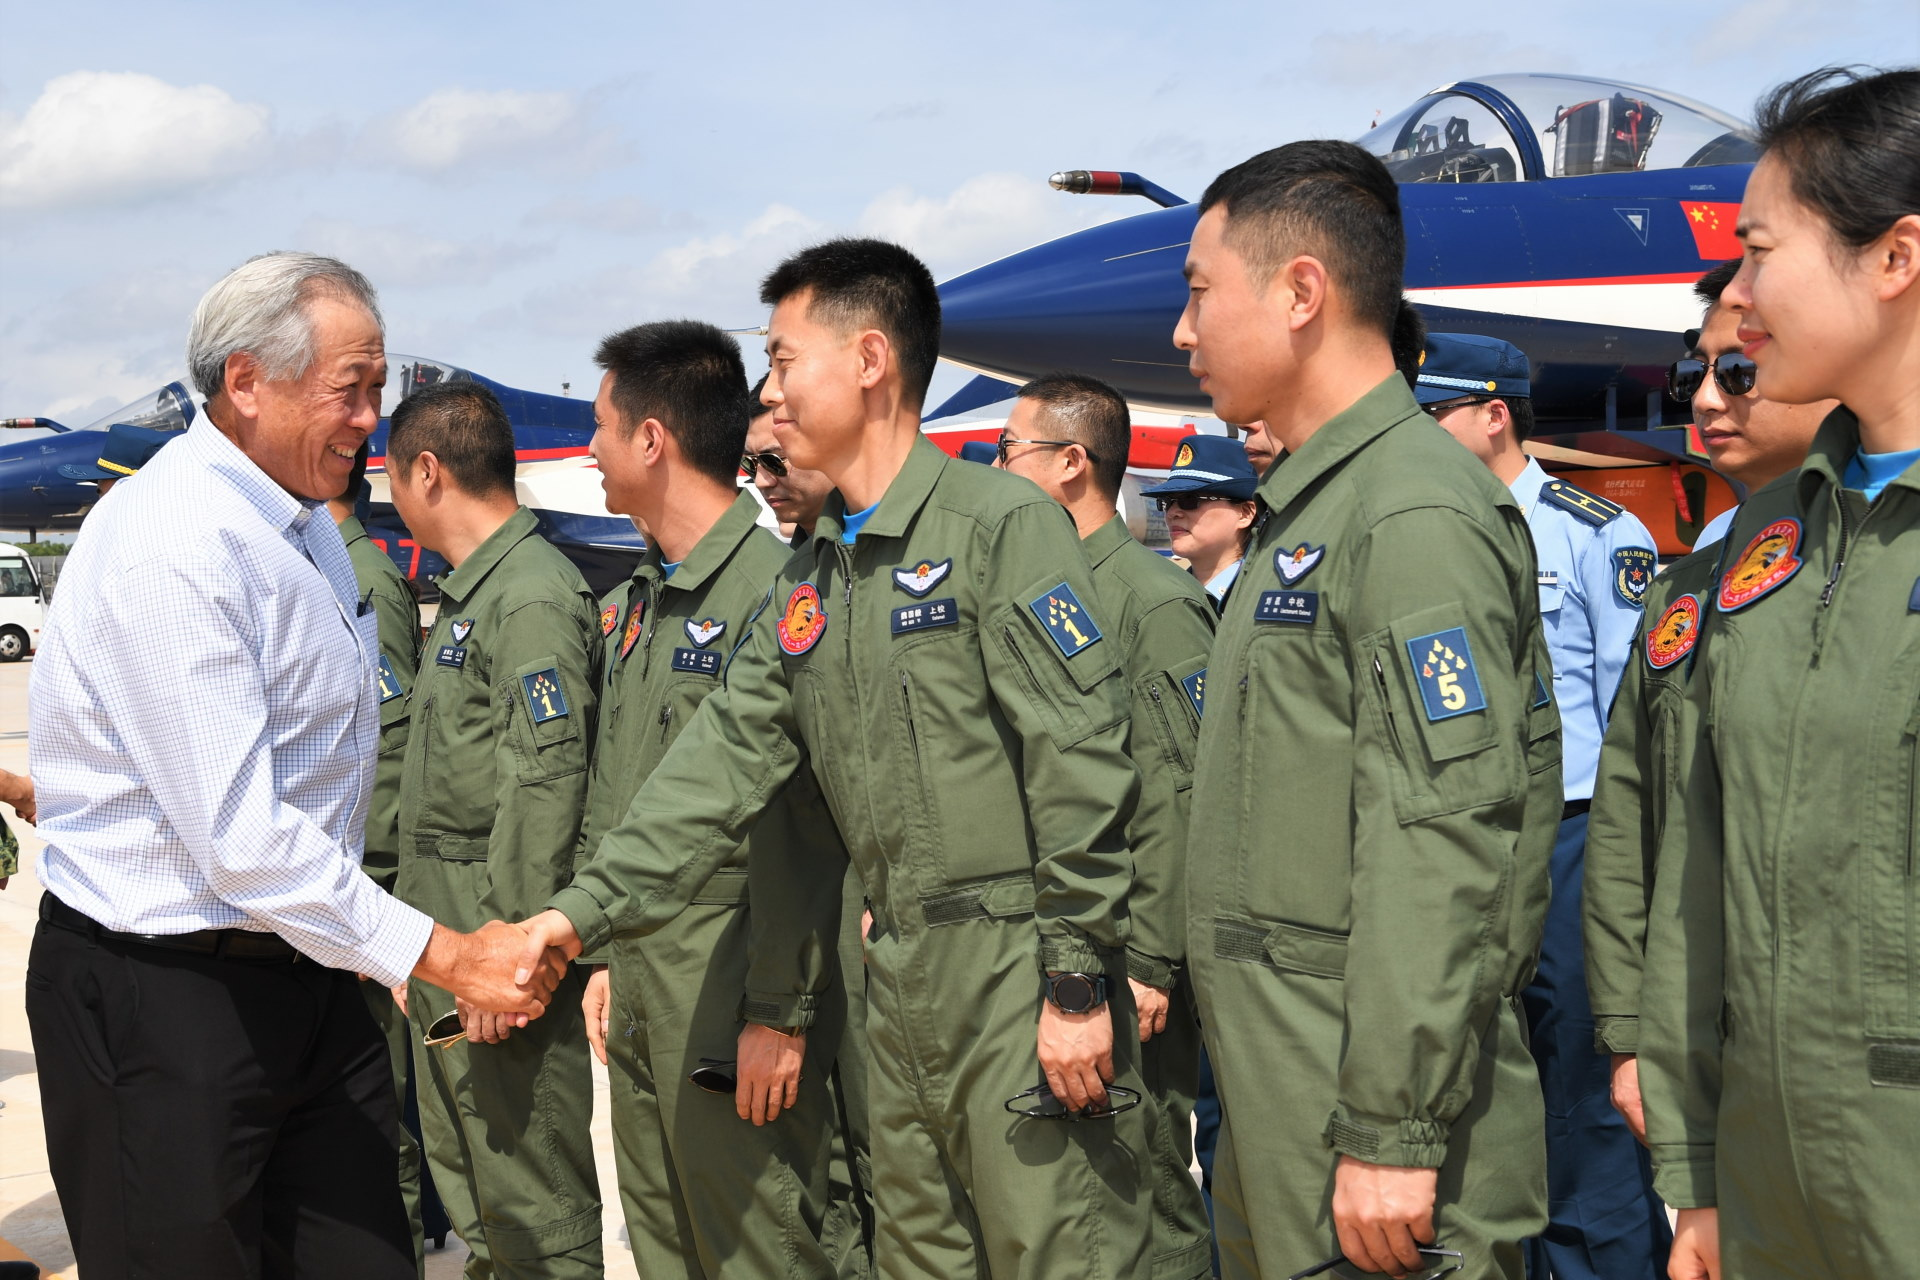 Dr Ng visiting the aircrew from the People's Liberation Army Air Force Ba Yi aerobatics team.